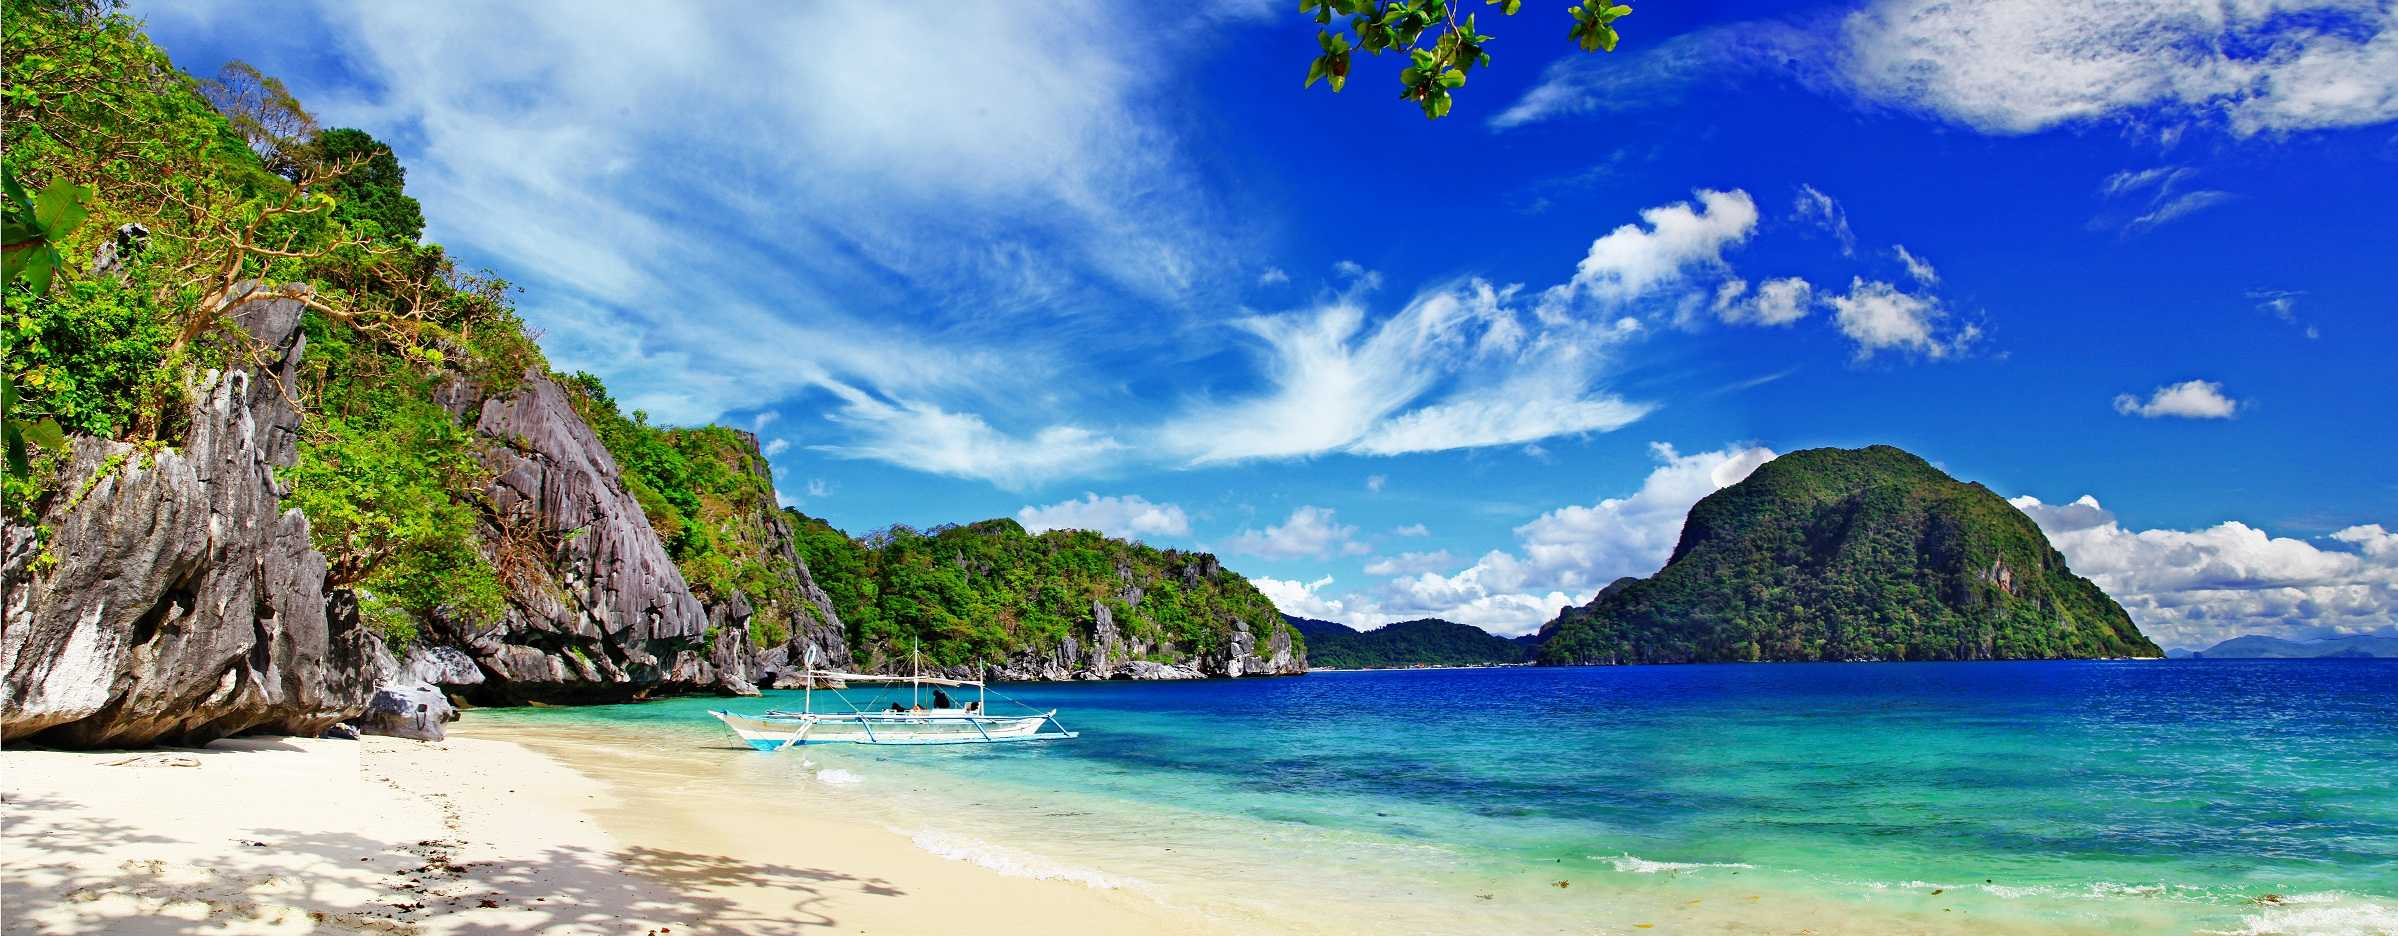 Palawan, Philippines: The Complete Travel Guide